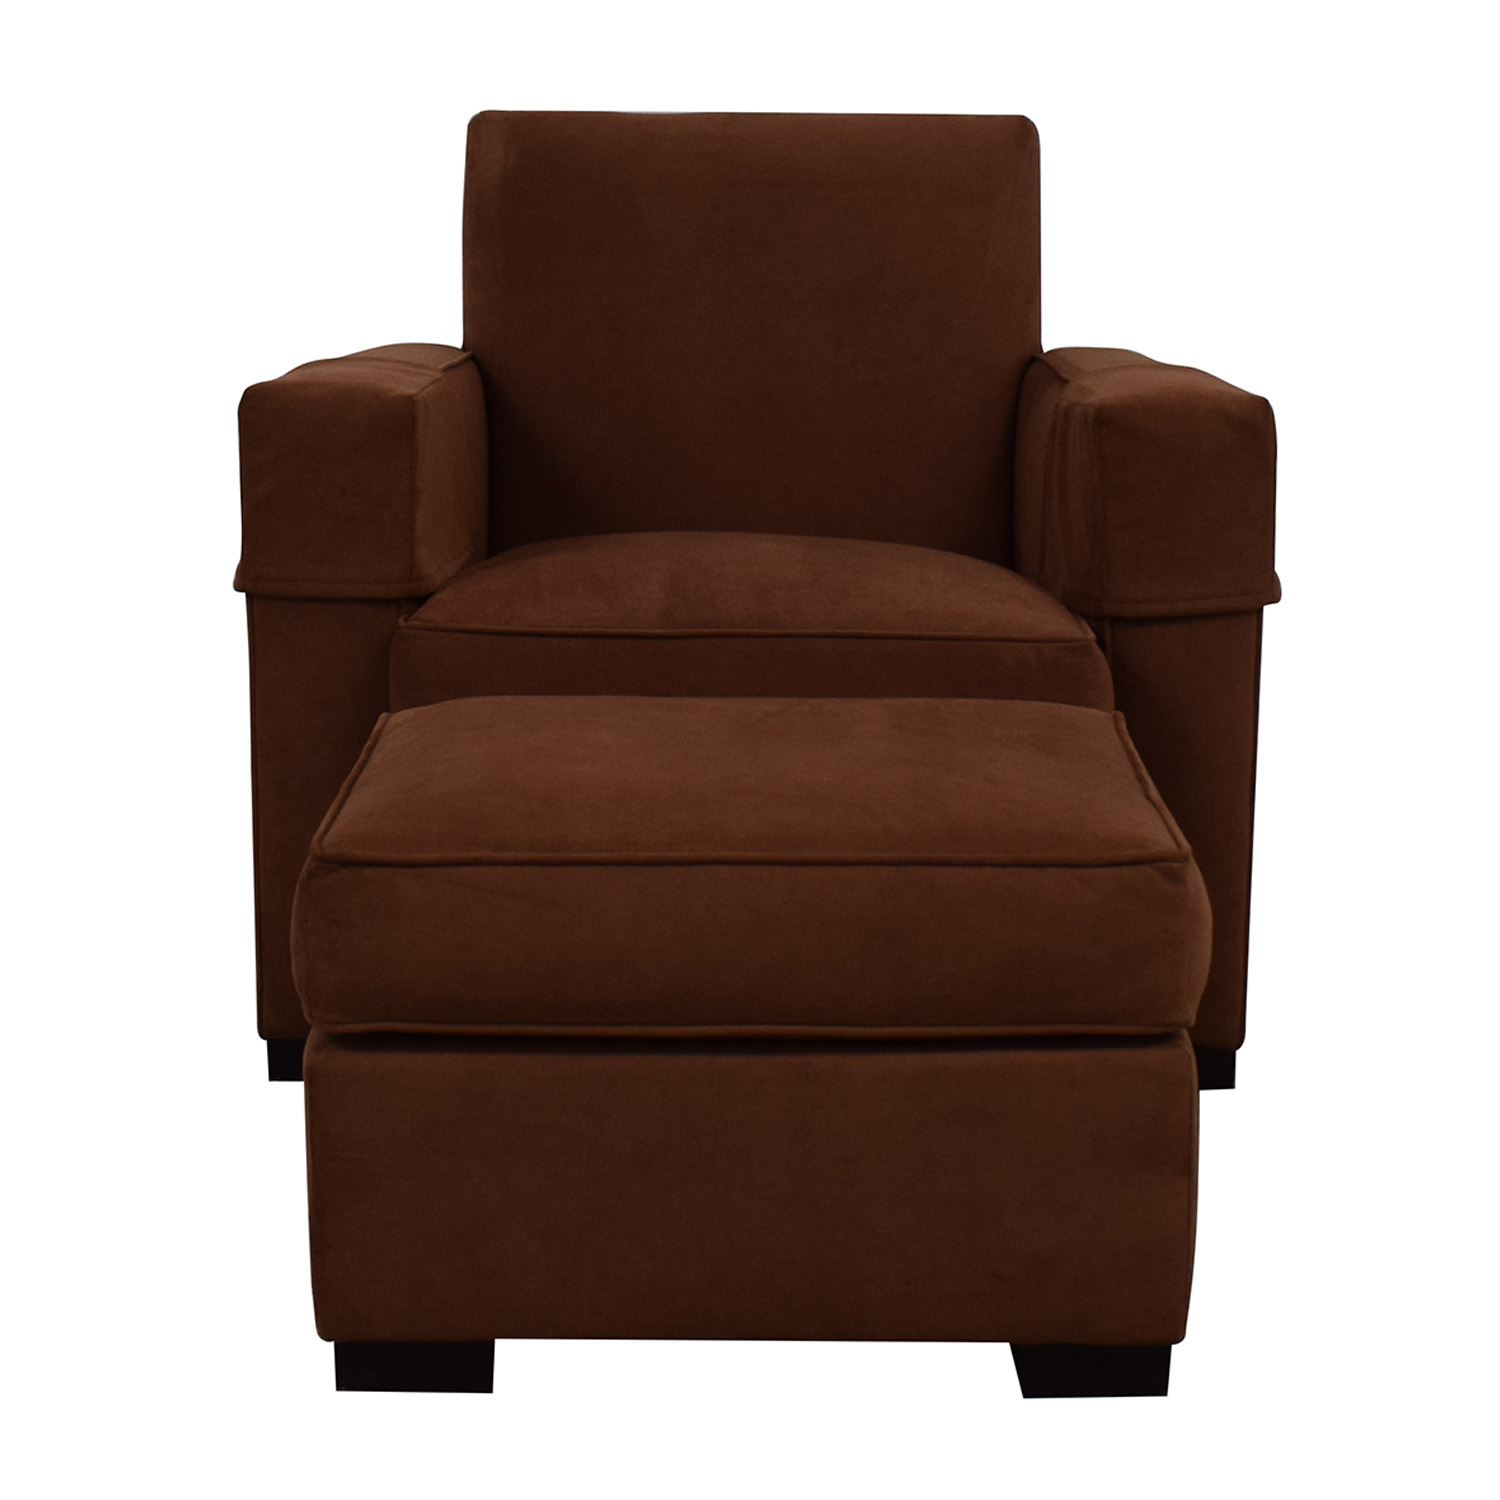 Hickory Chair Hickory Chair Ultra Suede Chair and Ottoman dimensions